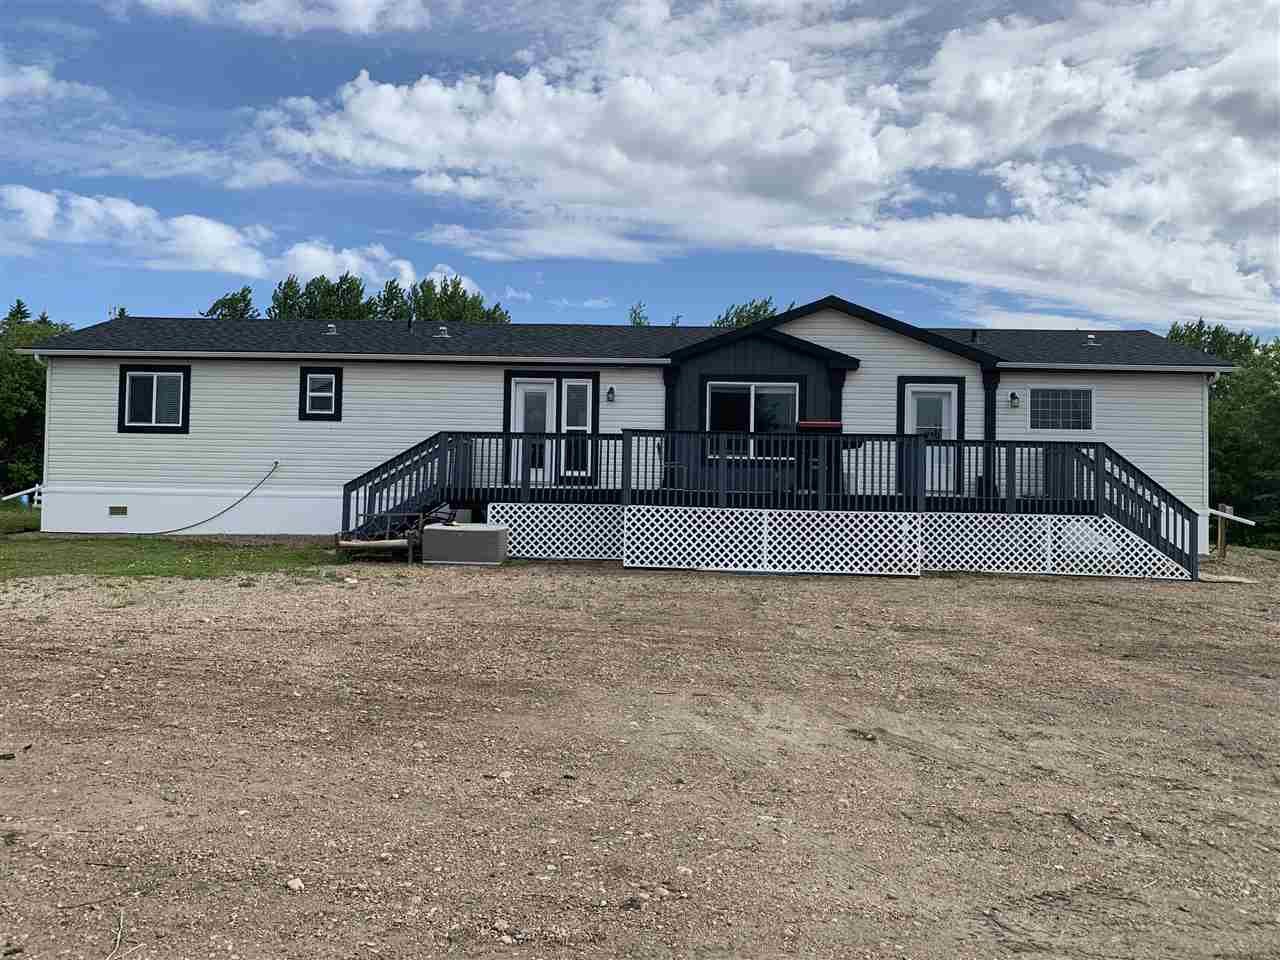 Main Photo: 22418 twp 610: Rural Thorhild County House for sale : MLS®# E4207843